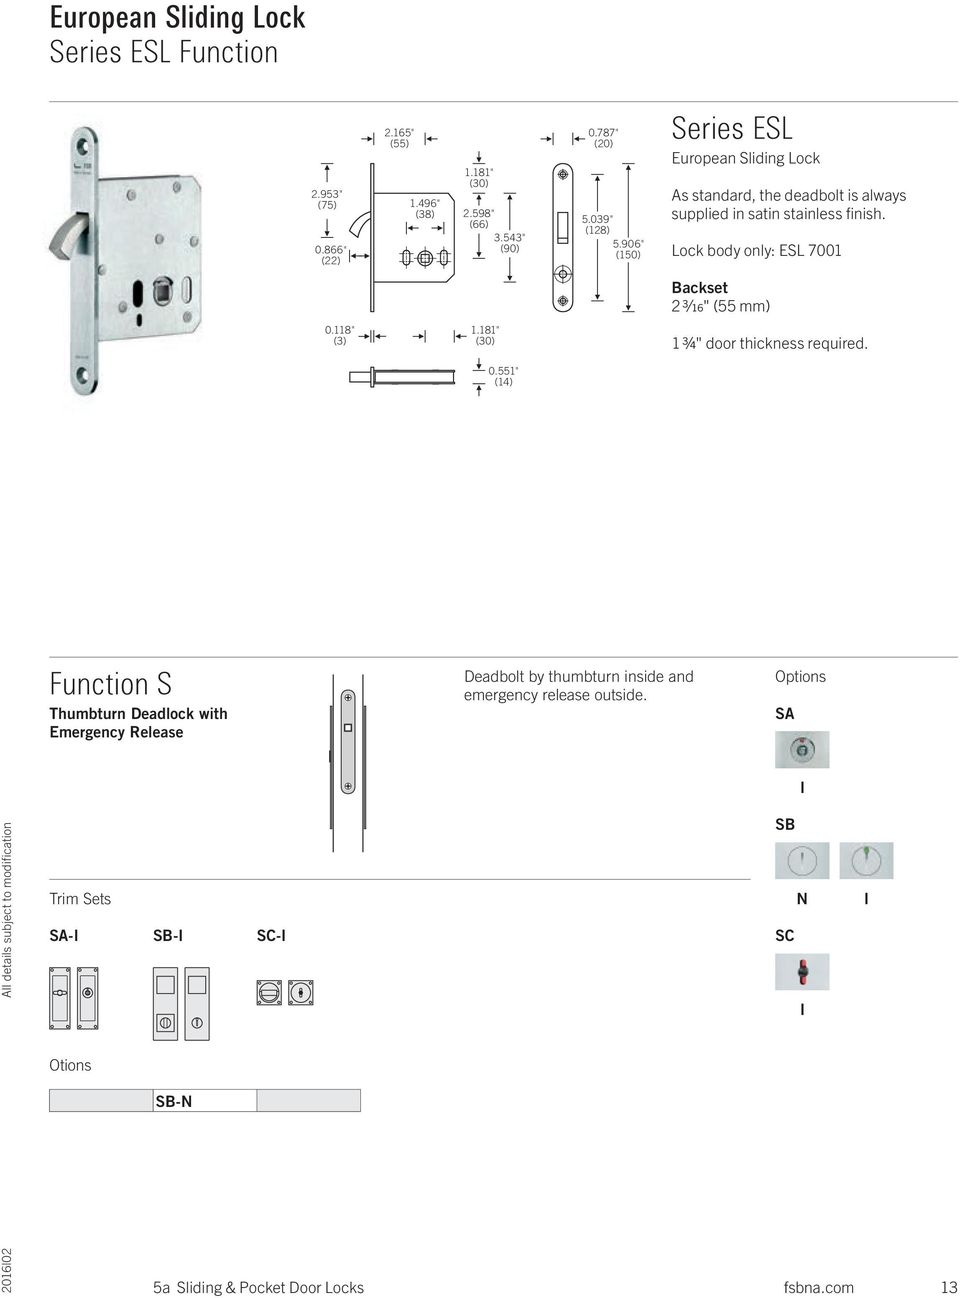 "906"" (150) Series ESL European Sliding Lock As standard, the deadbolt is always supplied in satin stainless finish."